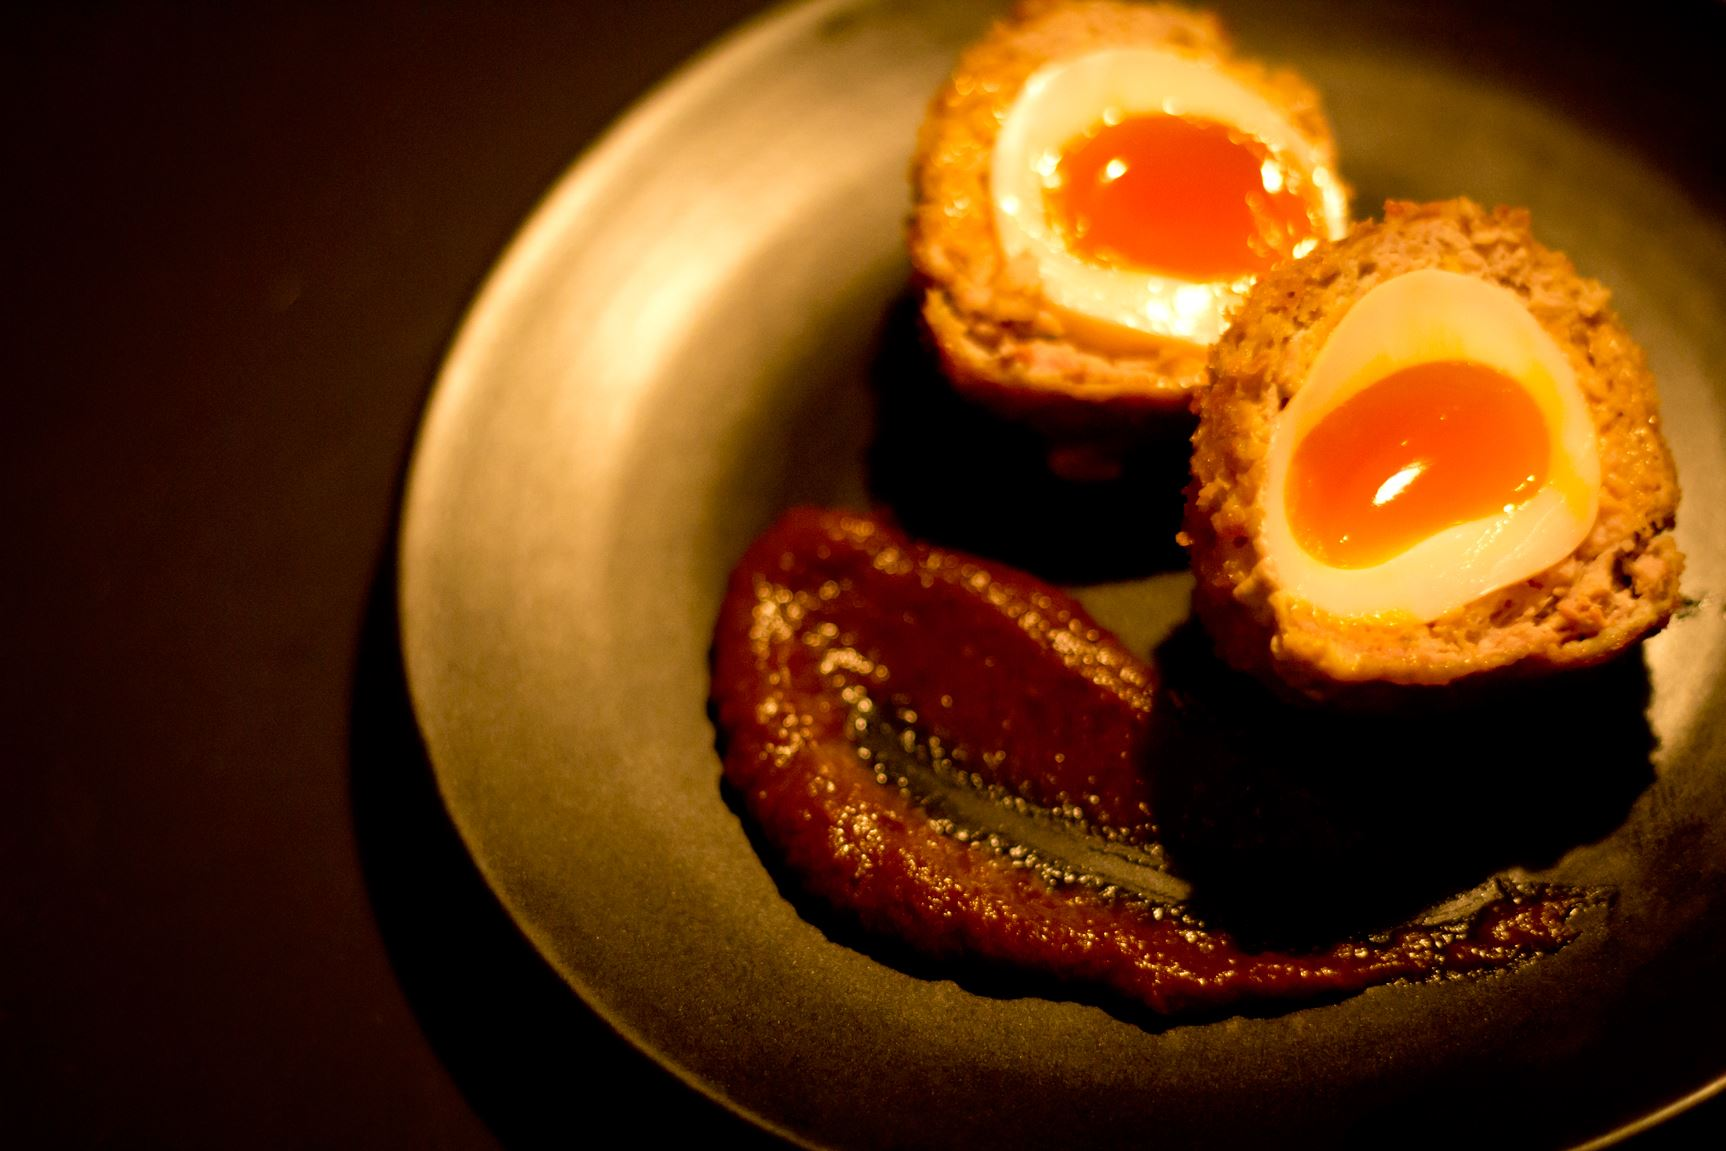 The Slighhouse Scotch egg. Eat your heart out Ginsters.